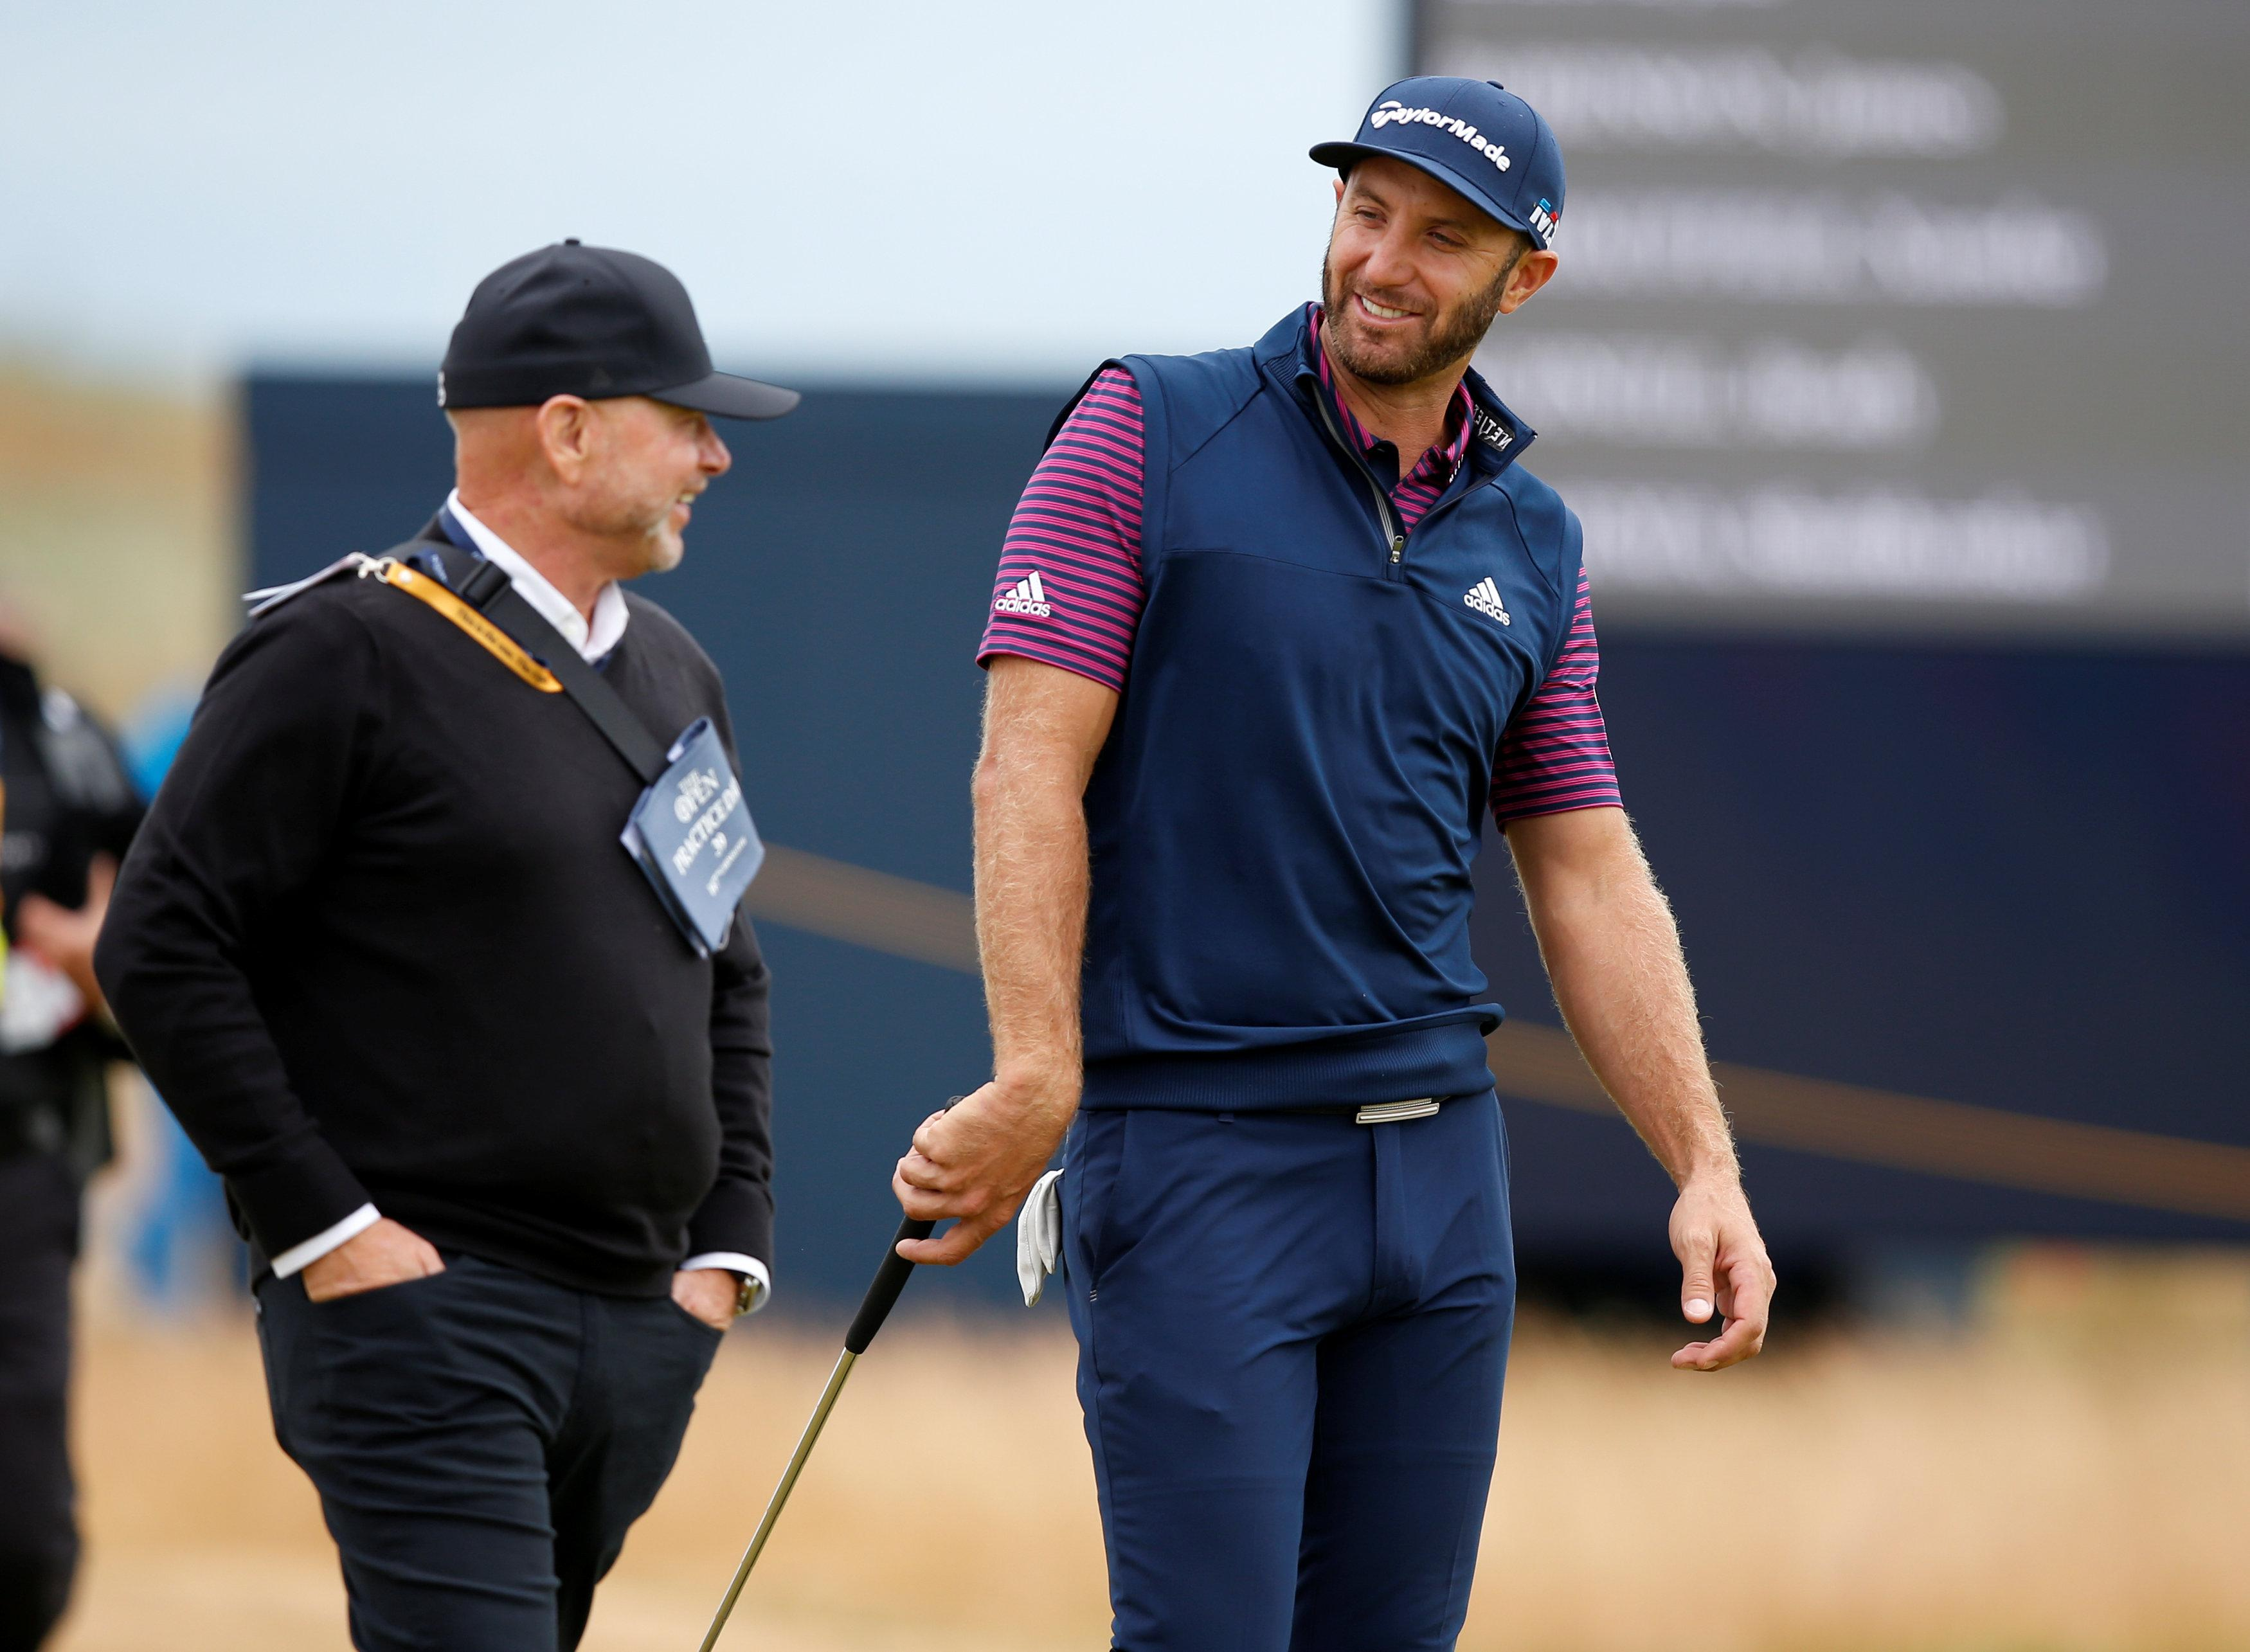 World No 1 Dustin Johnson is playing his first golf since last month's US Open